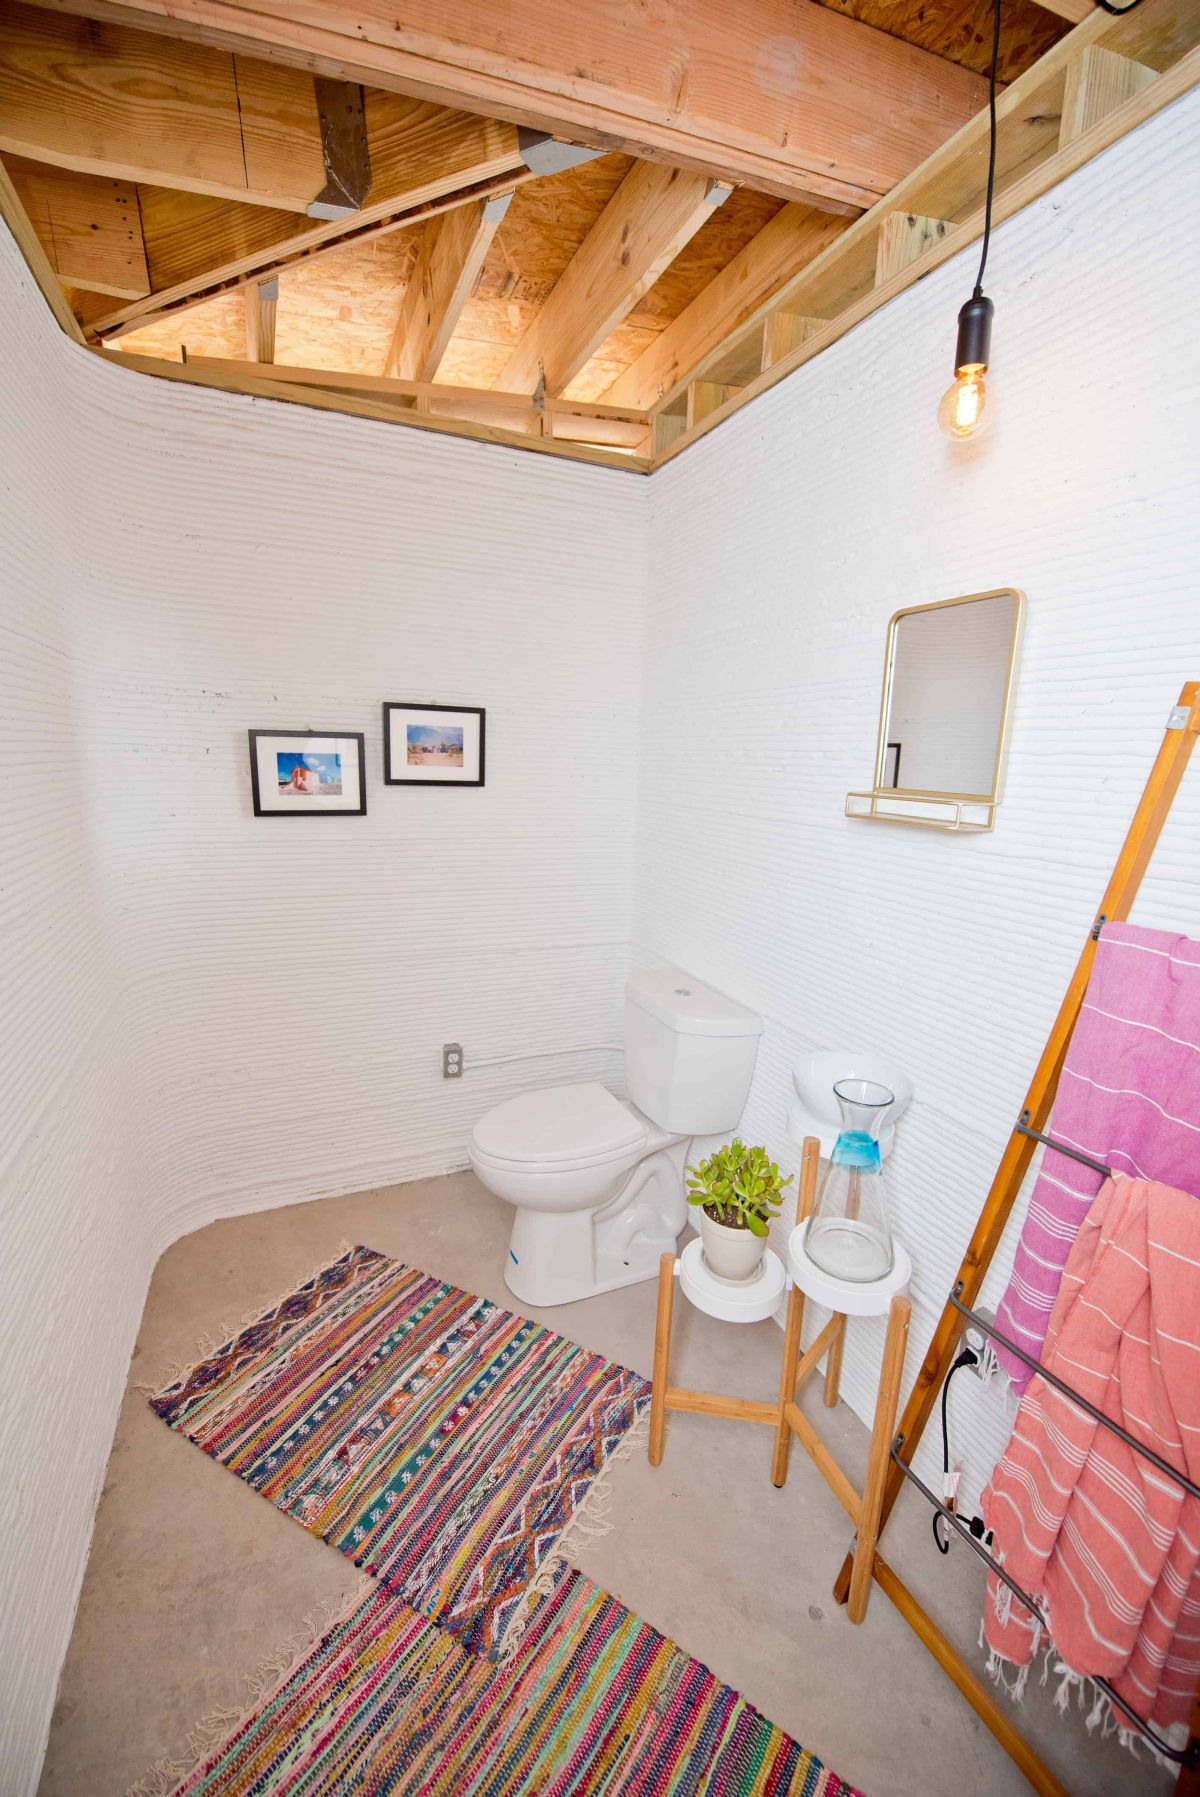 The bathroom is small and is done with simple stands, a ladder for towels and colorful rugs